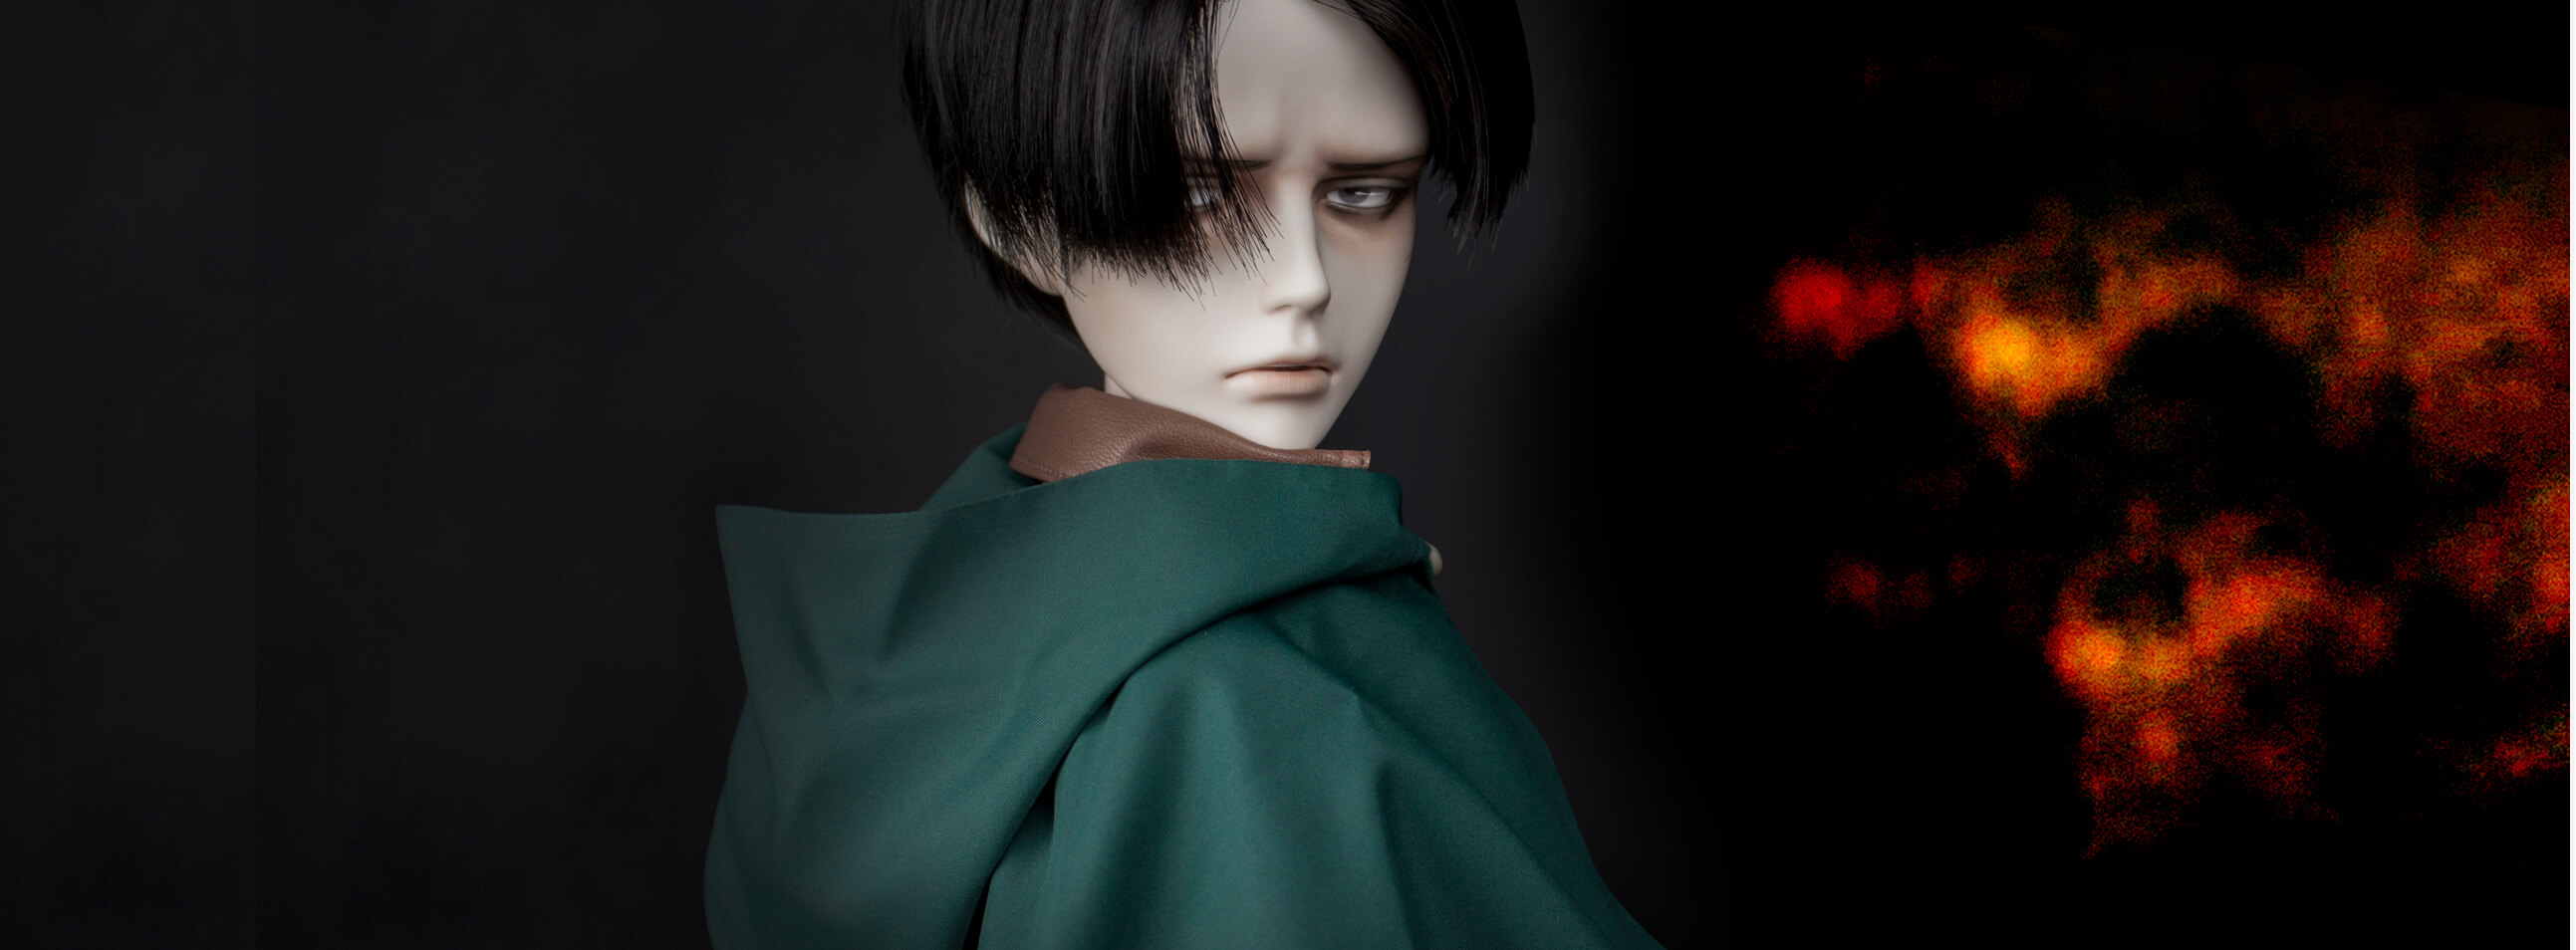 'Attack on Titan' Levi Captain Cast Doll will start accepting orders at the same time!